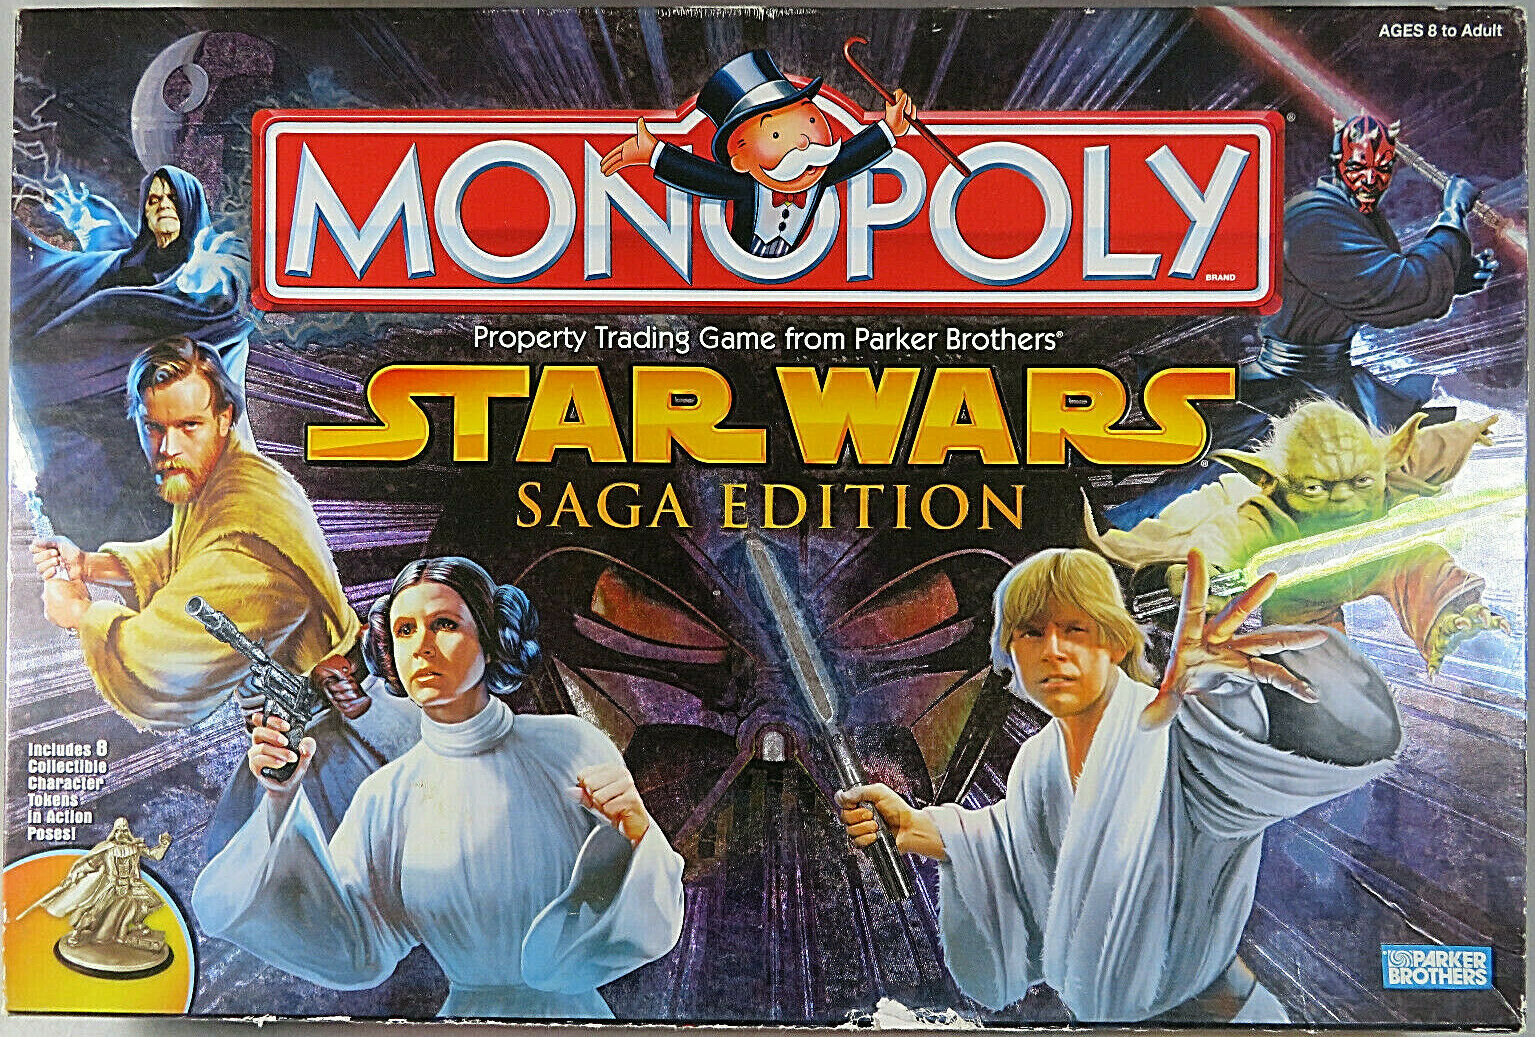 MONOPOLY STAR WARS SAGA EDITION 2005 Property Trading Game From Parker Bredhers